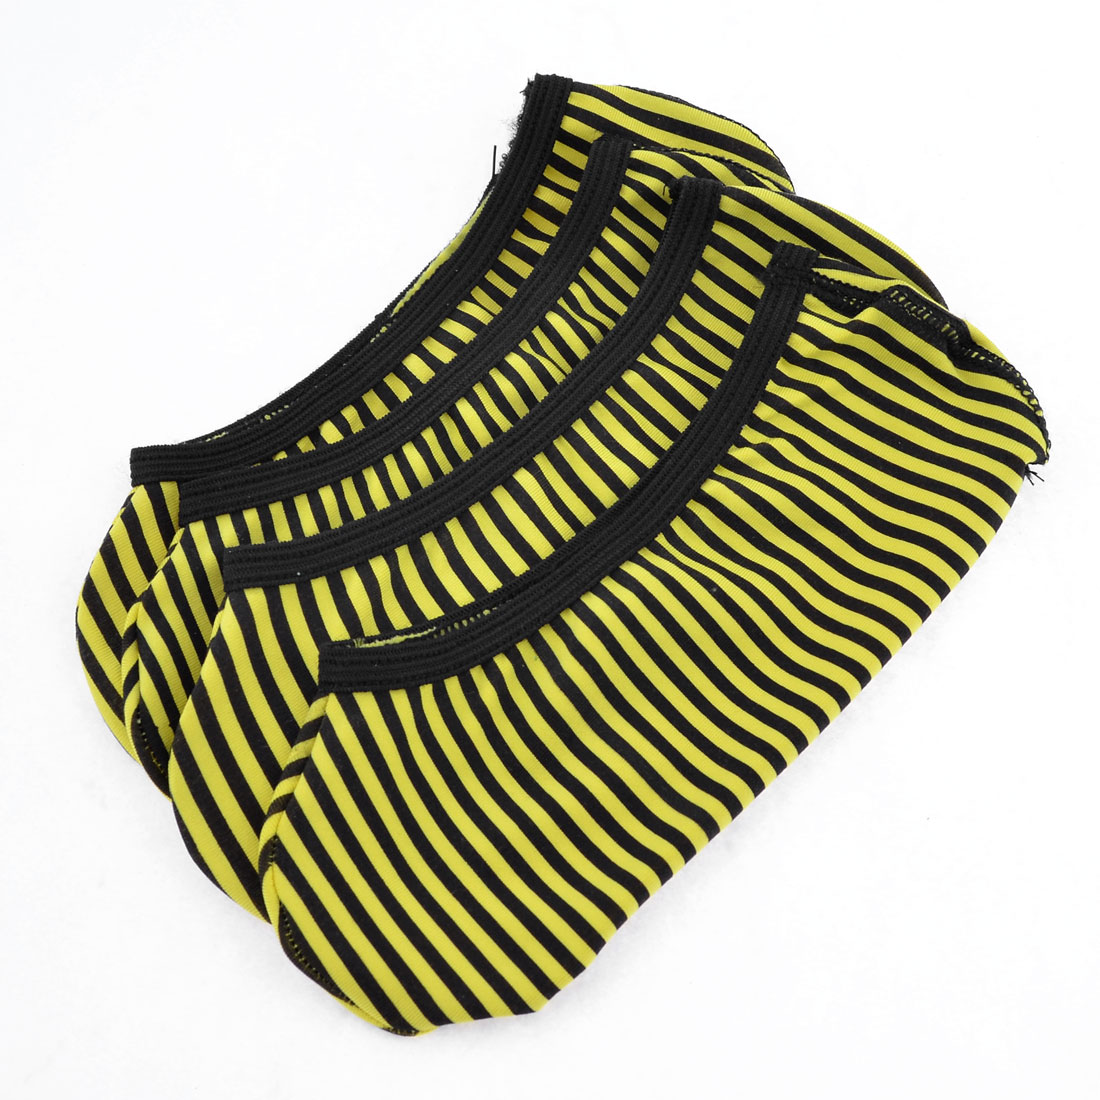 2 Pairs Low Cut Yellow Black Stripes Print Stretchy Boat Socks for Woman